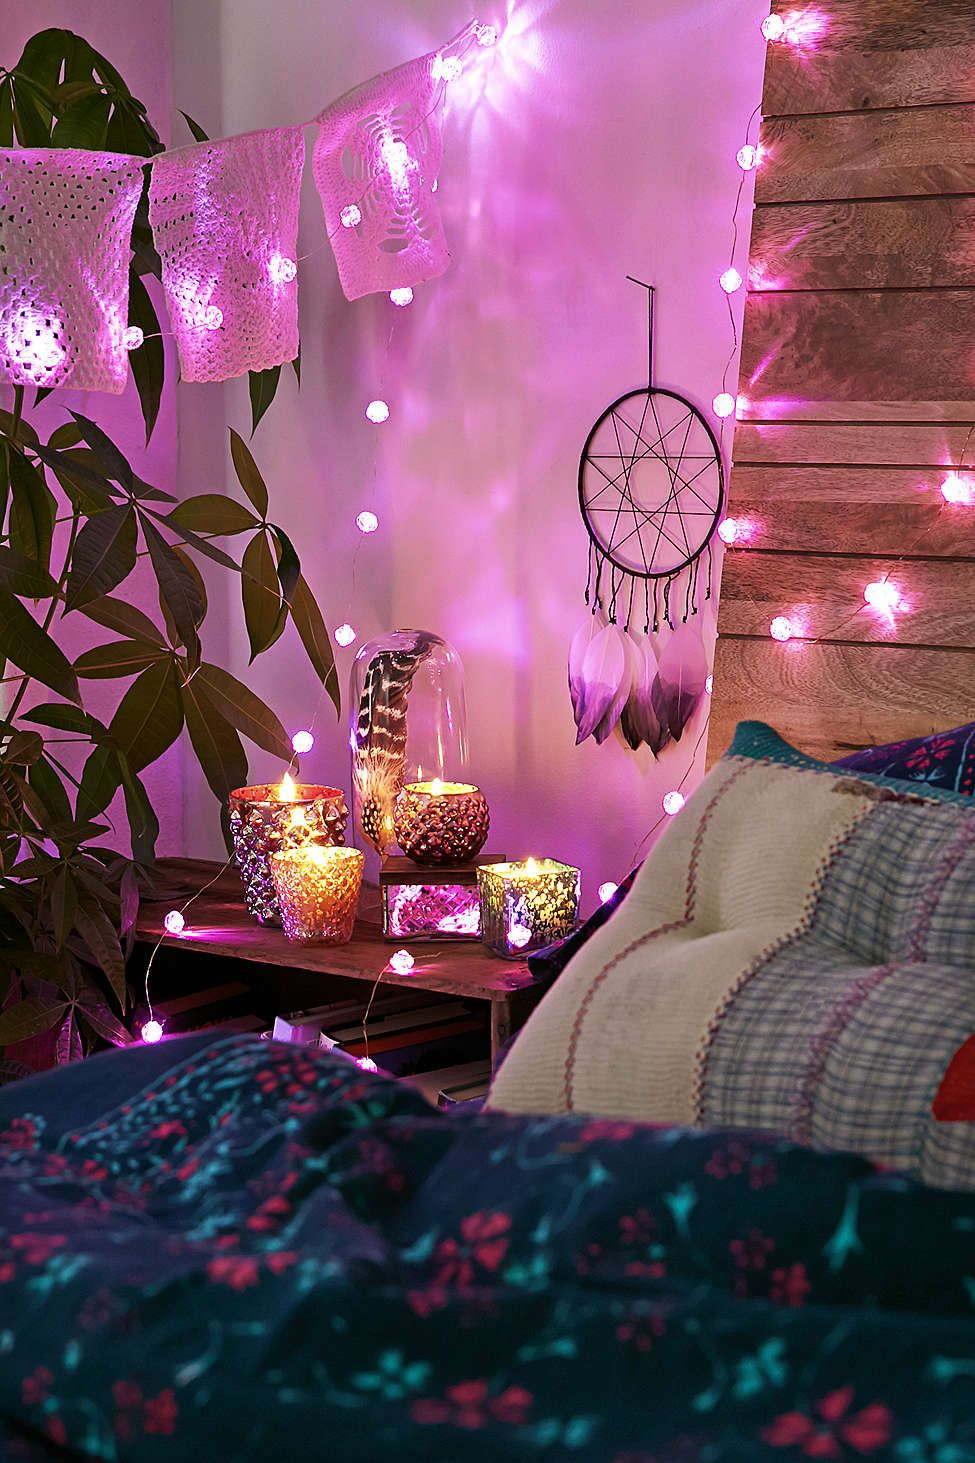 Bedroom Decor String Lights 20 string lights you can keep up all year long   urban outfitters